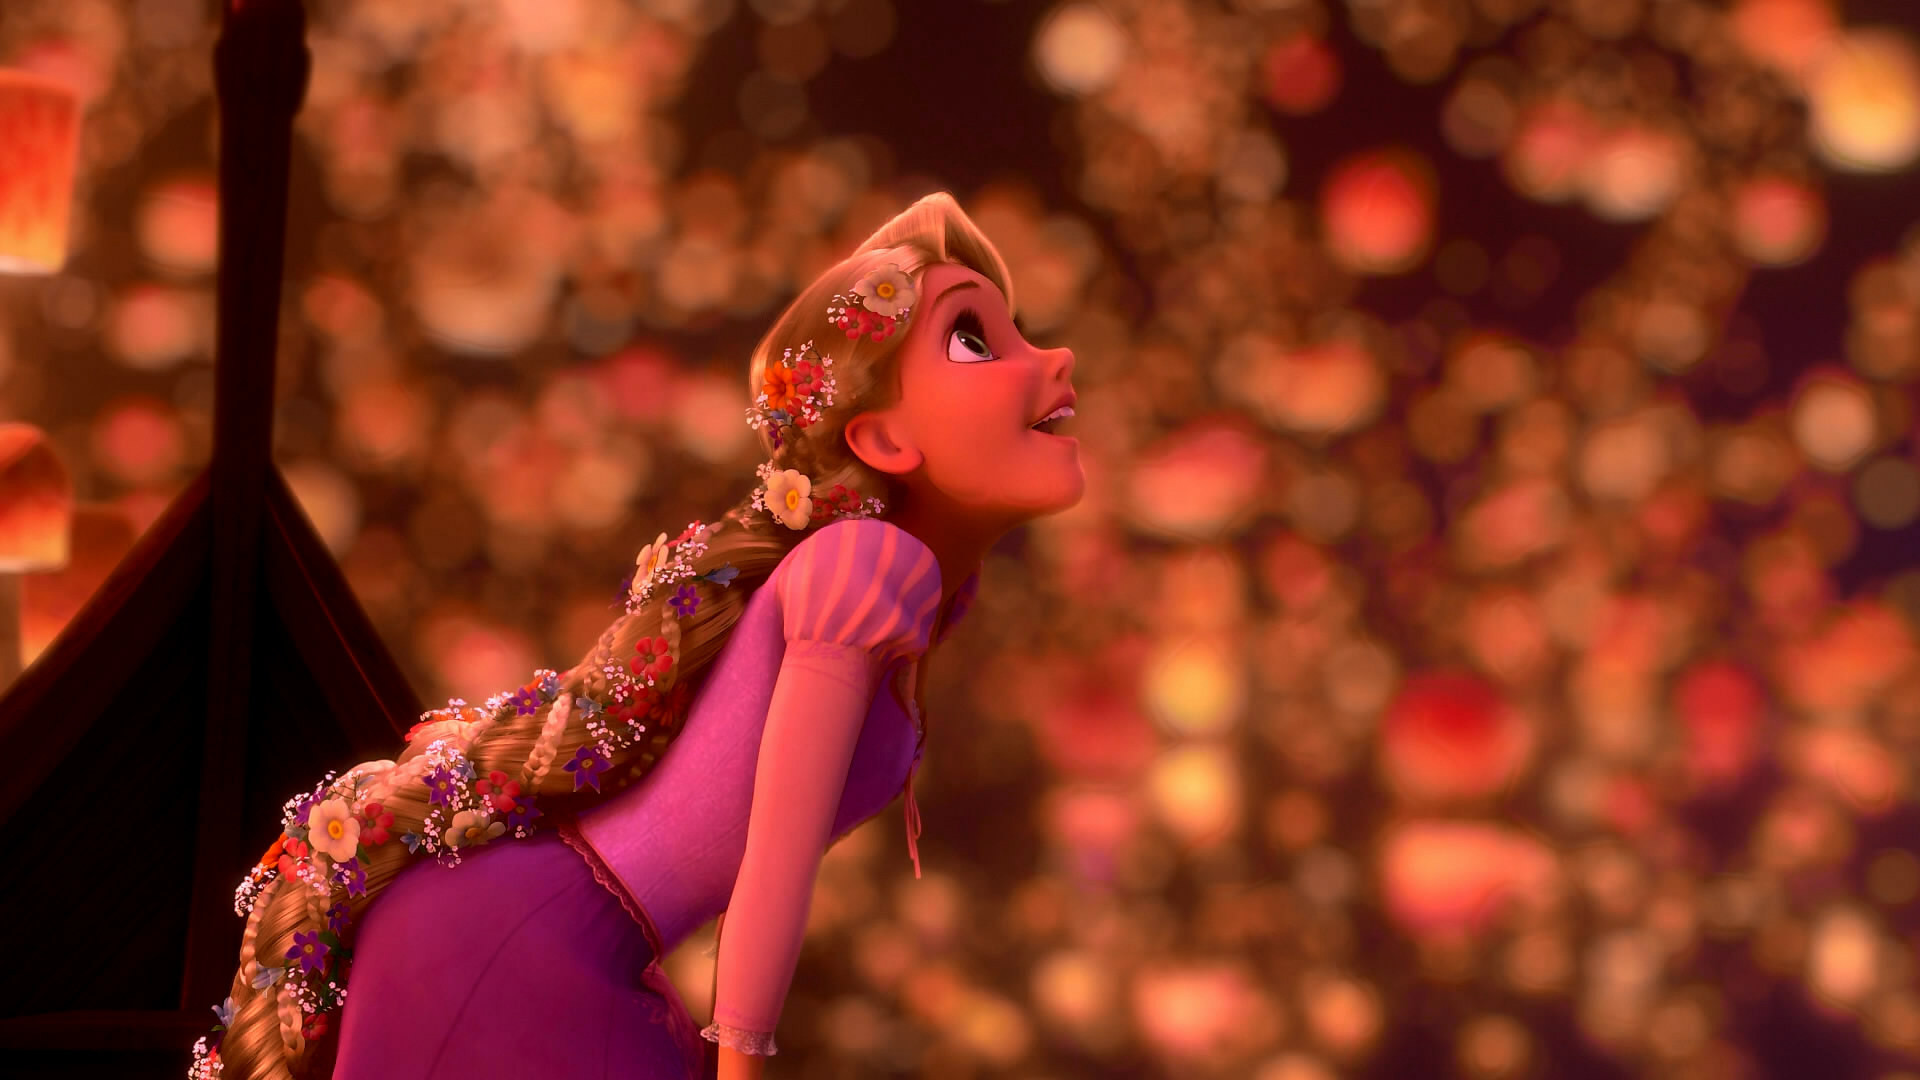 tangled 3d download